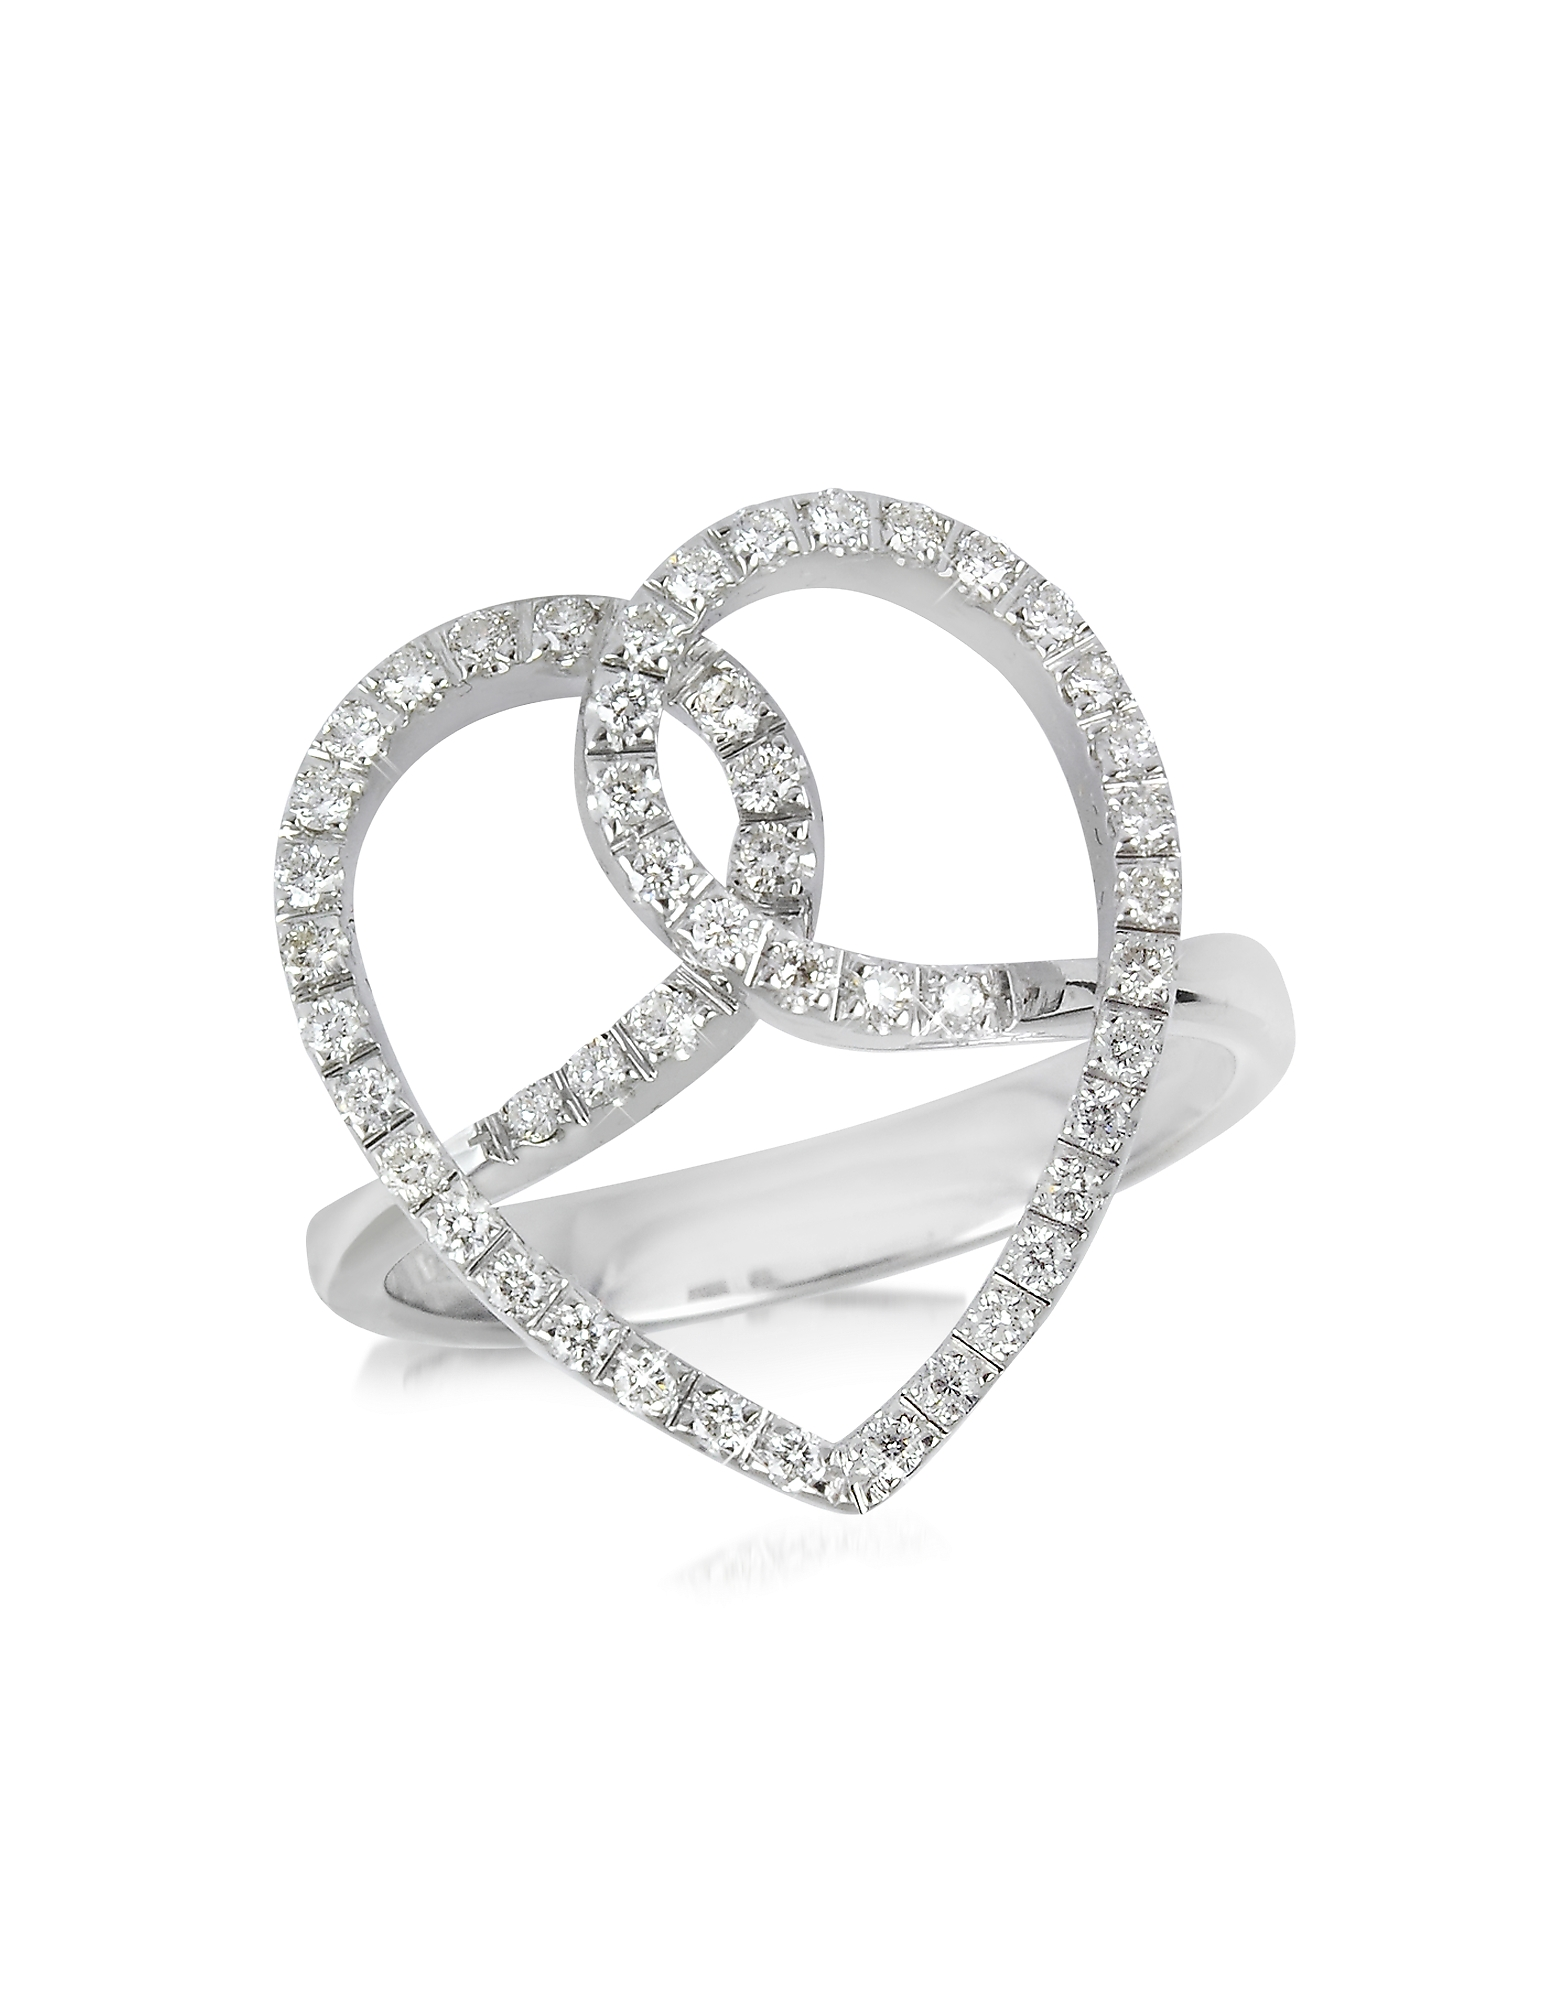 Forzieri Rings, Diamond Crossing Heart 18K White Gold Ring